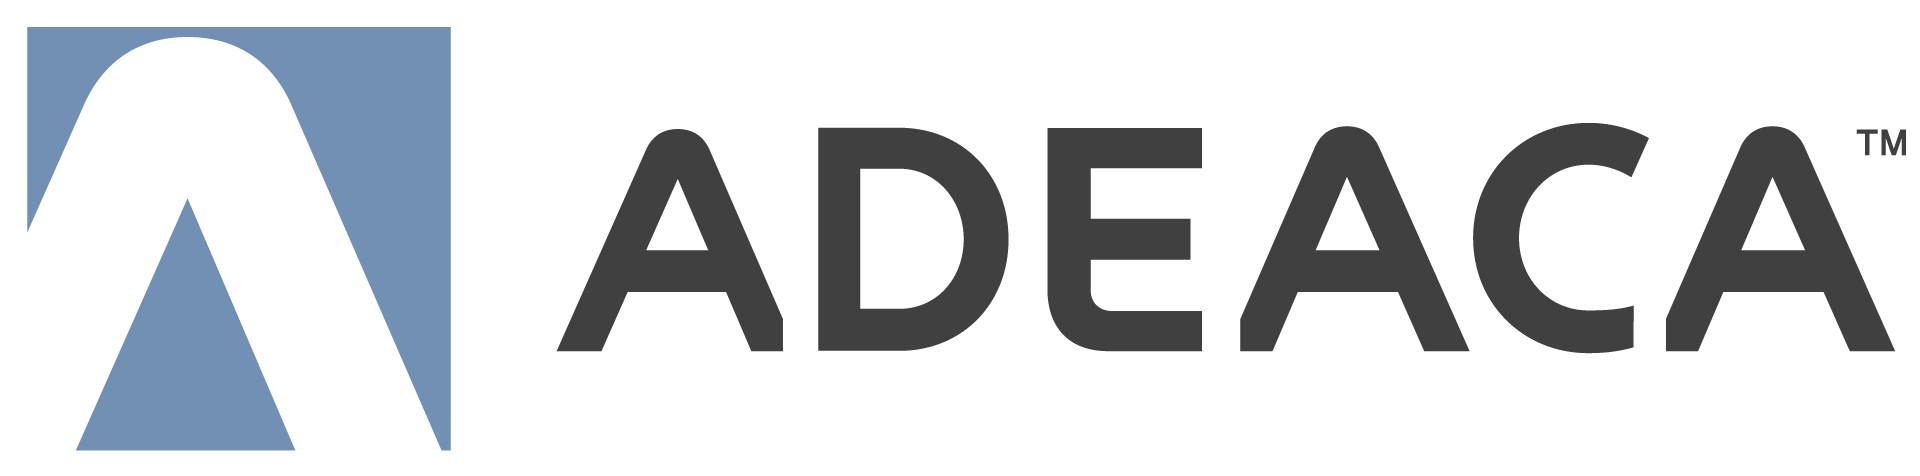 Forbes Looks at New Product Categories According to Matt Mong of Adeaca